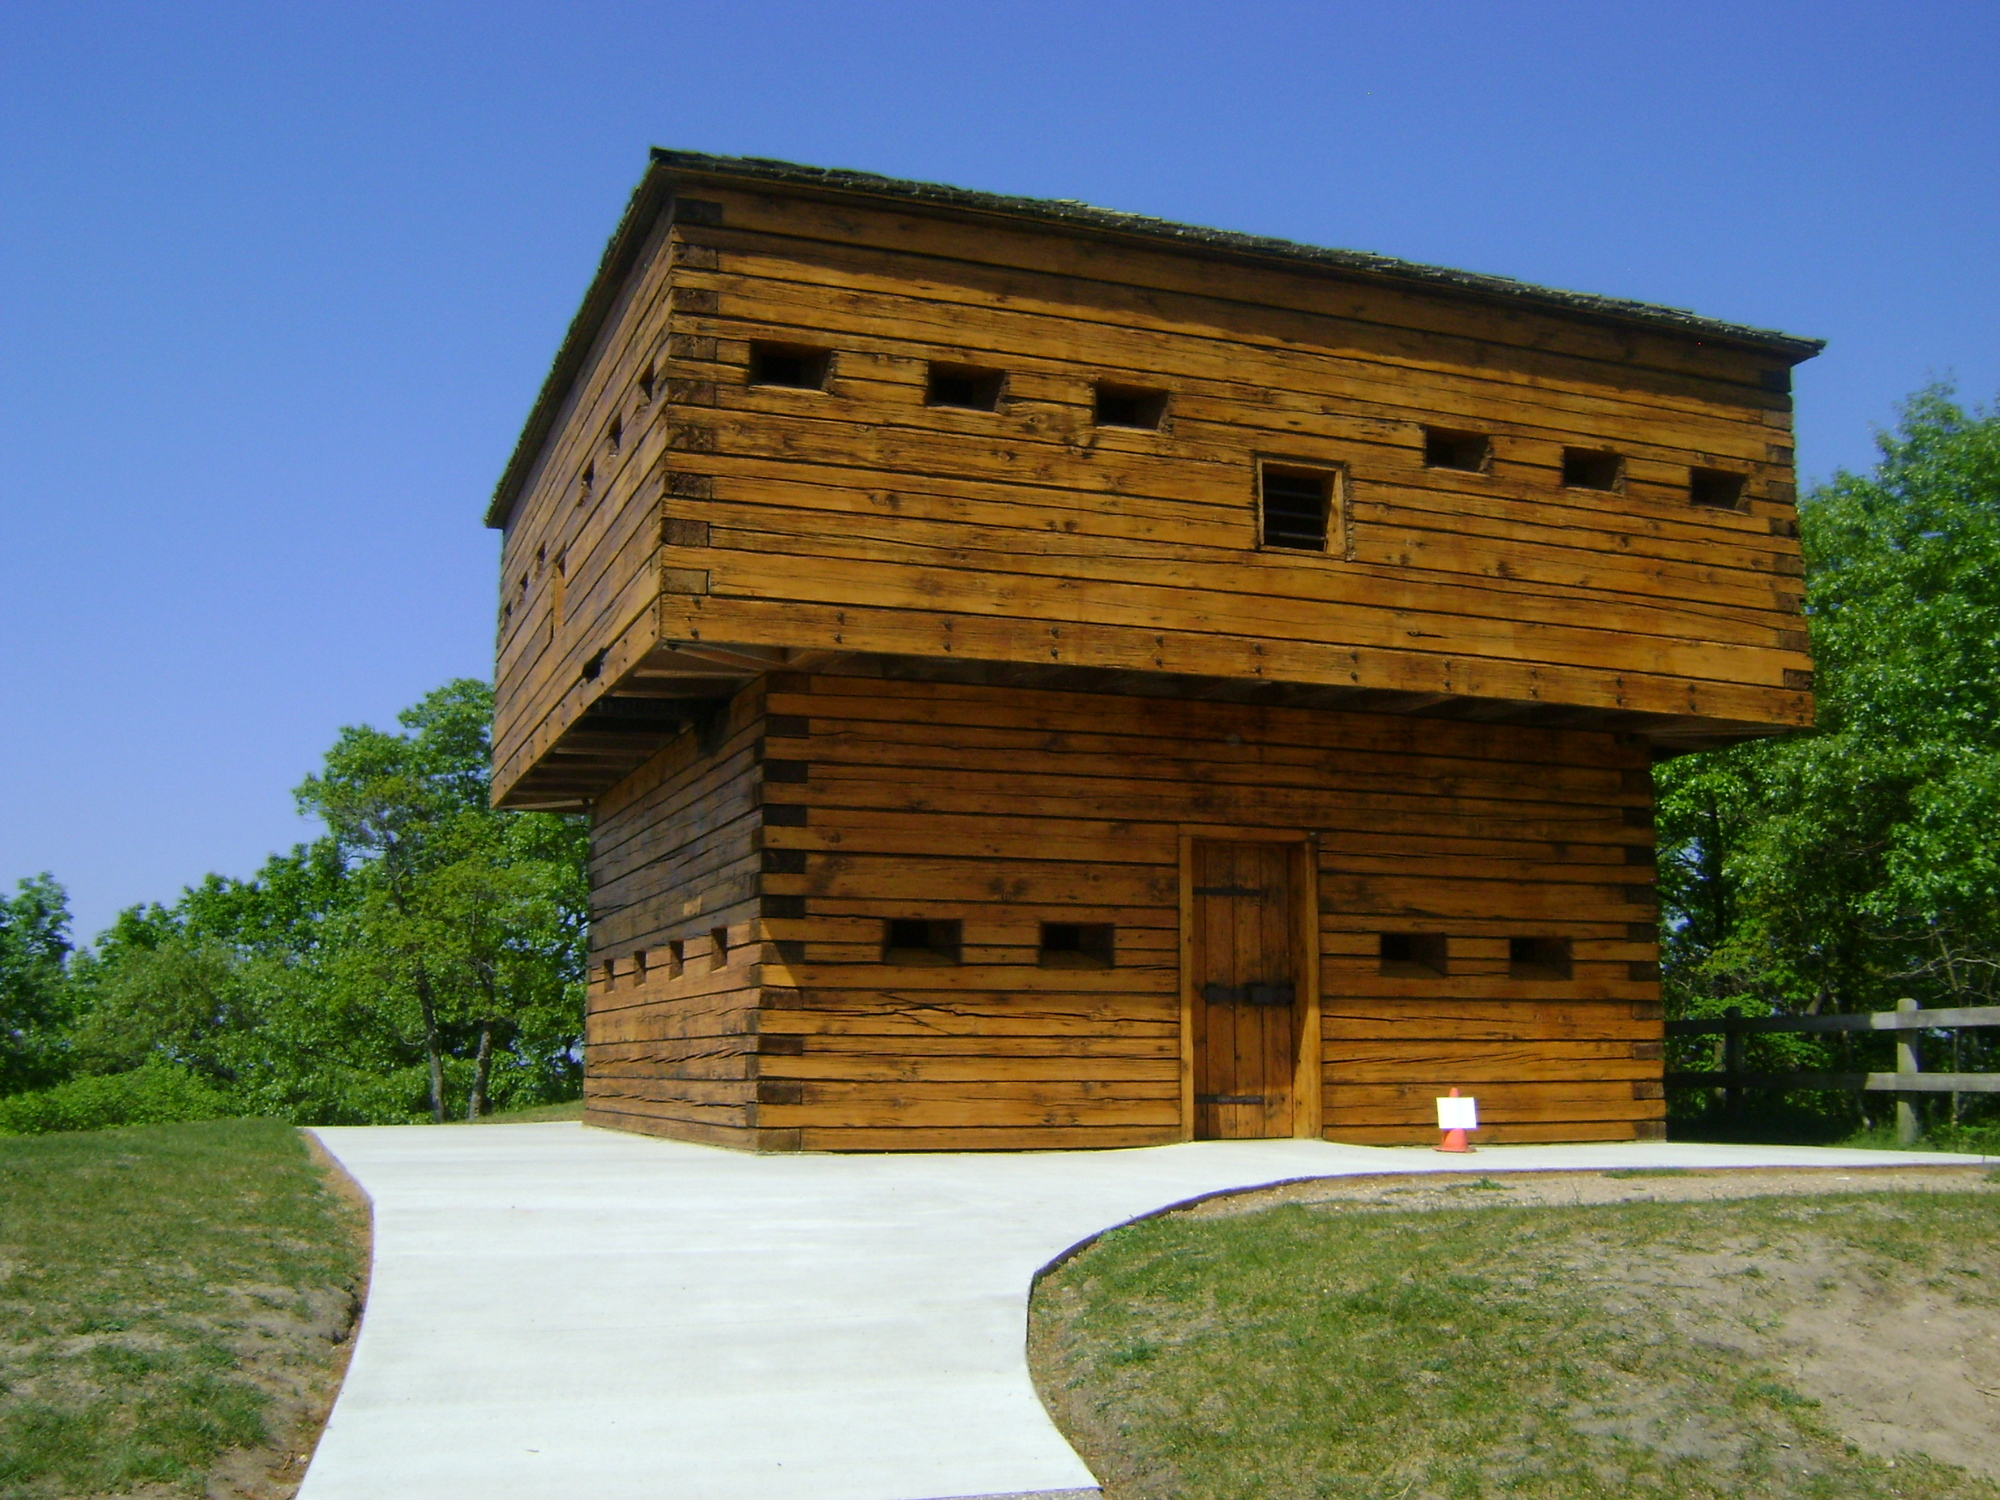 The historic blockhouse, a replica of Fort Detroit, is shown at Muskegon State Park in Muskegon County.